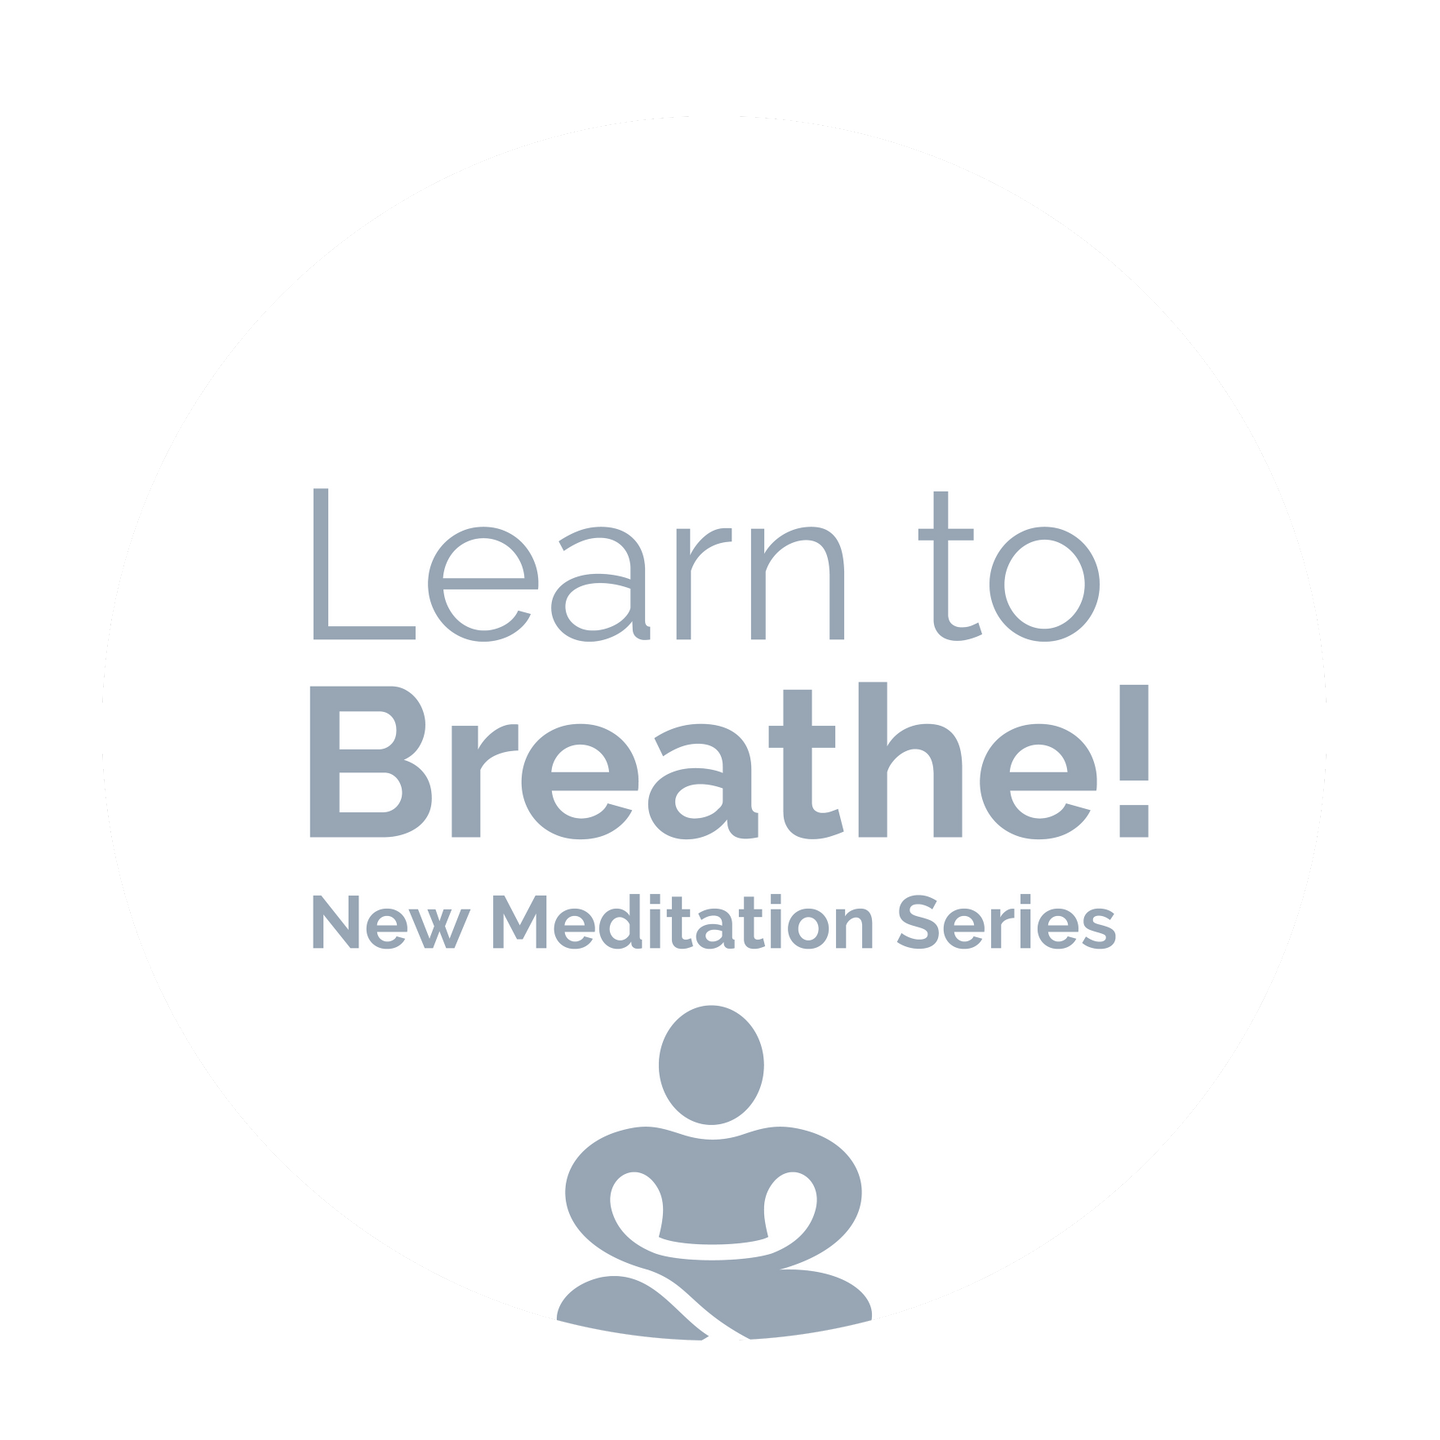 Click here to learn more about John Vosler's new meditation series